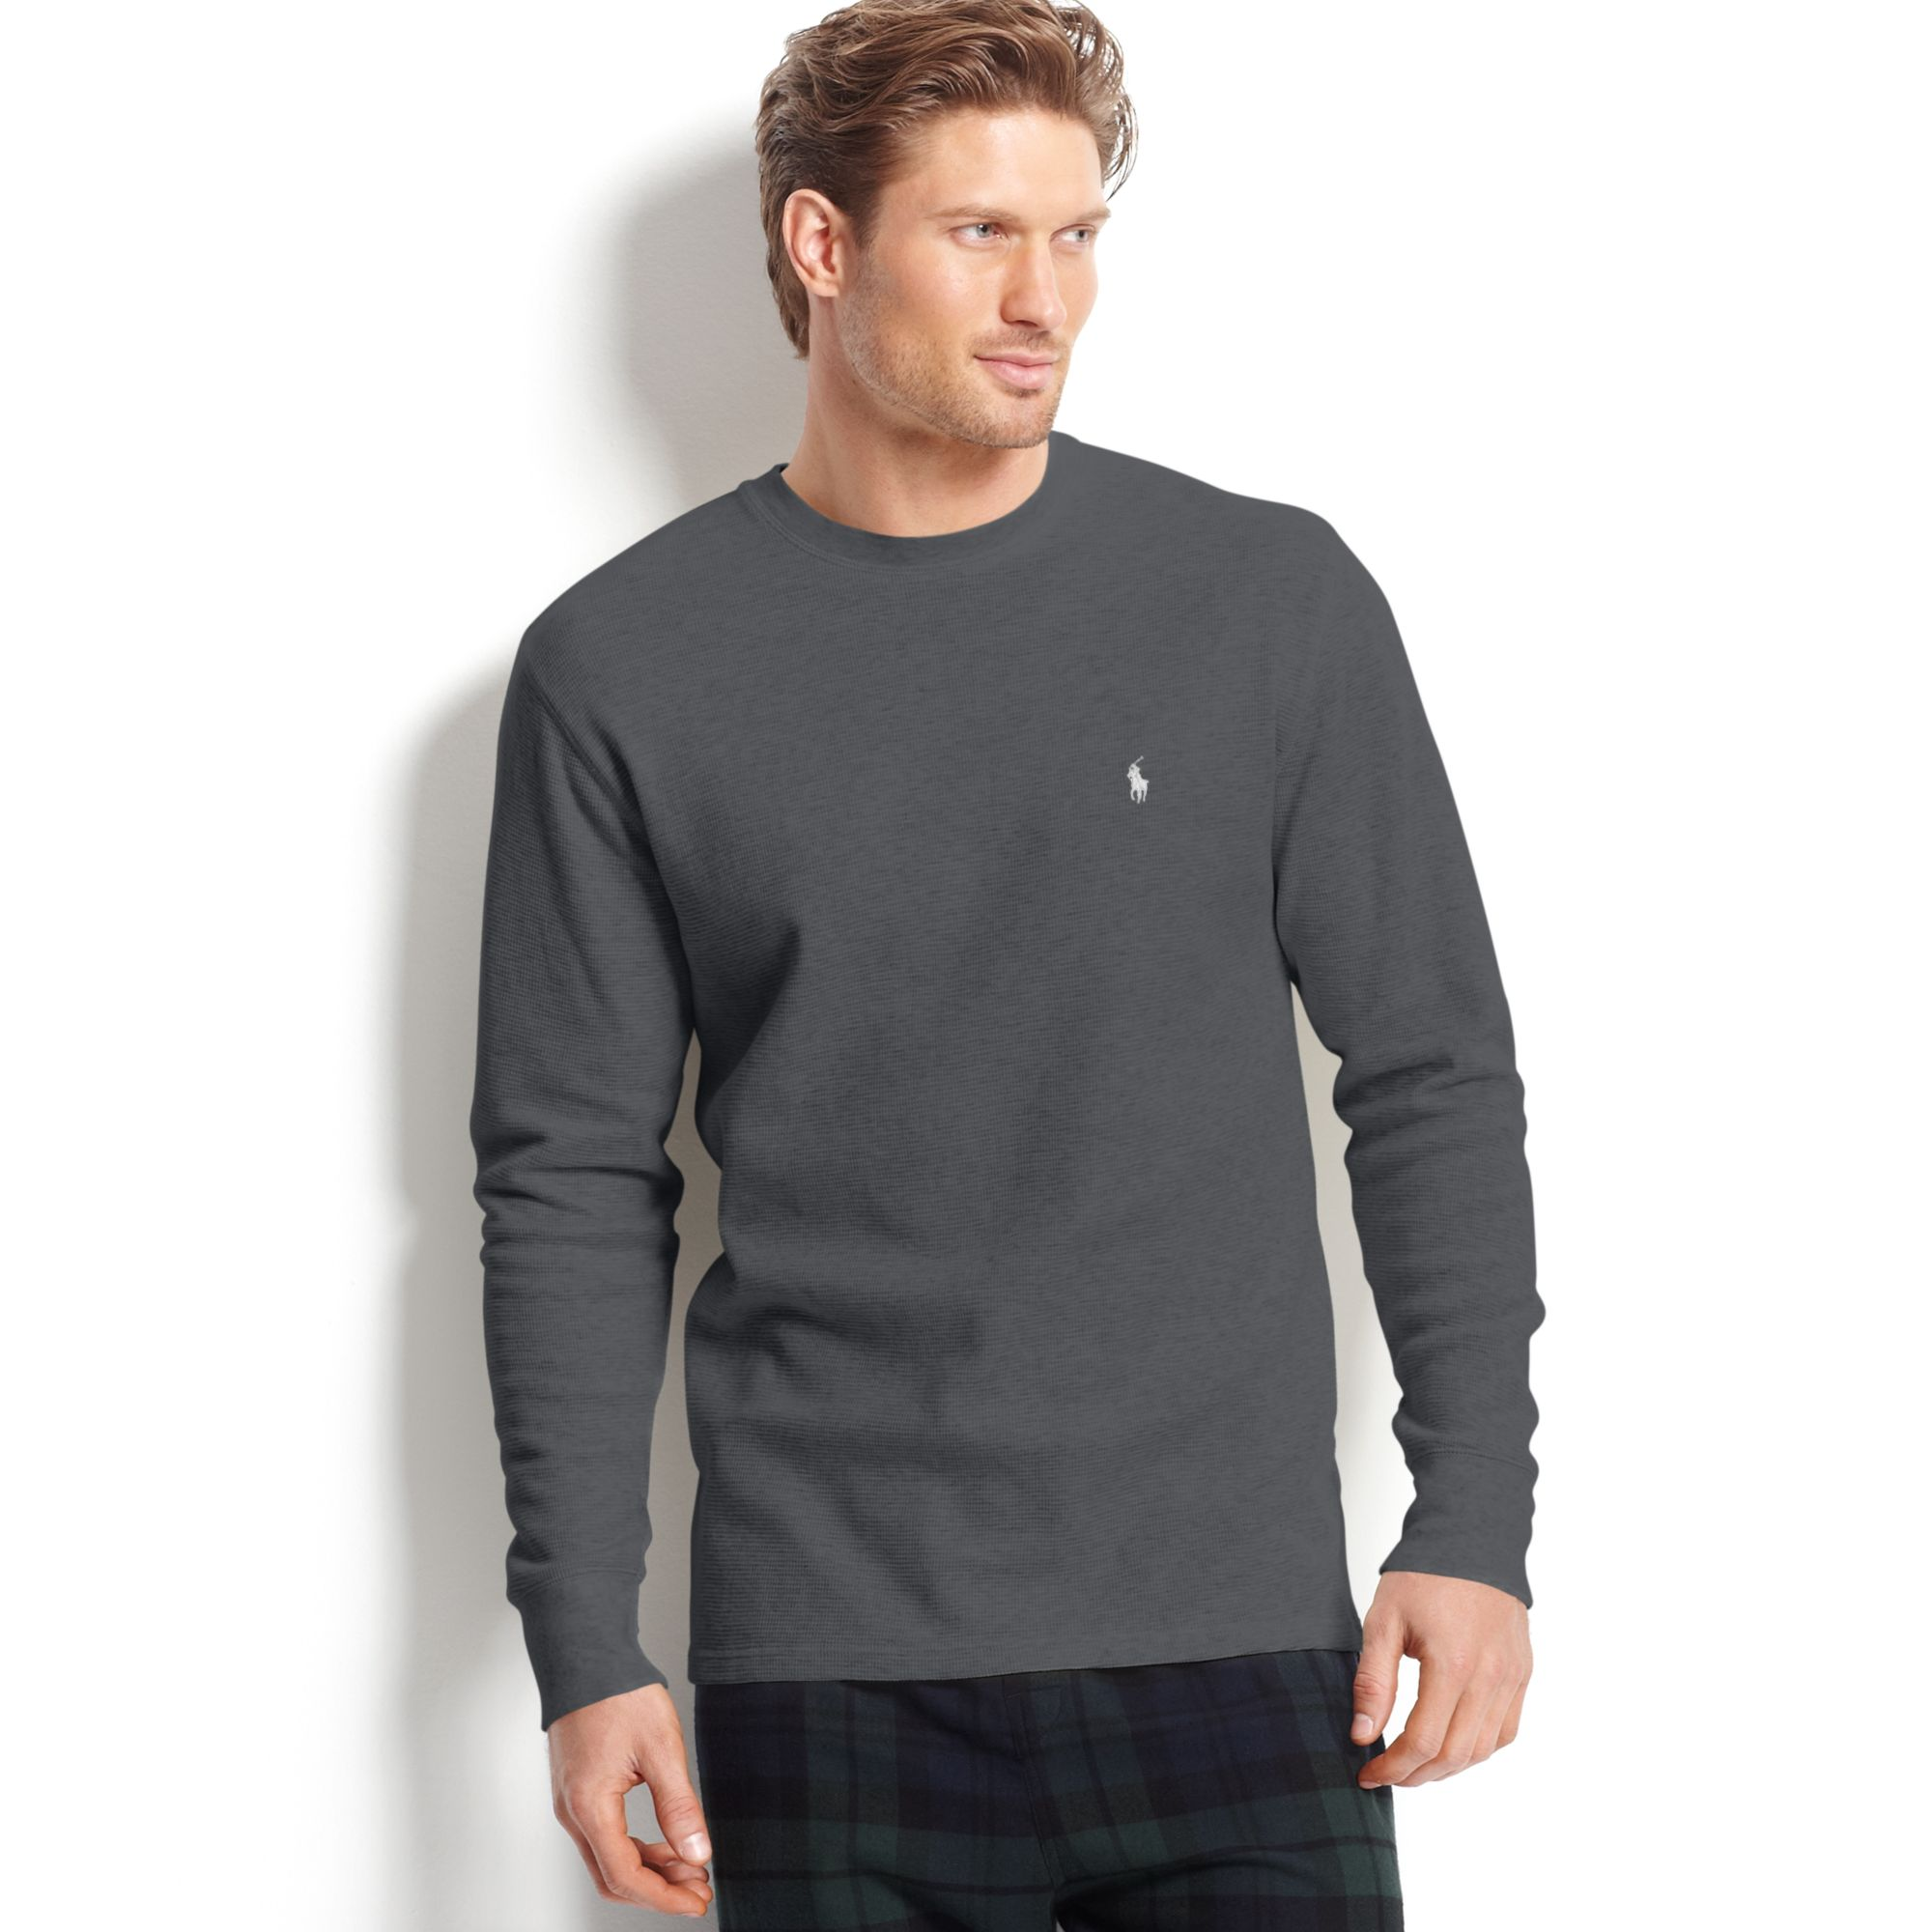 lyst ralph lauren long sleeve crew neck waffleknit thermal tshirt in gray for men. Black Bedroom Furniture Sets. Home Design Ideas